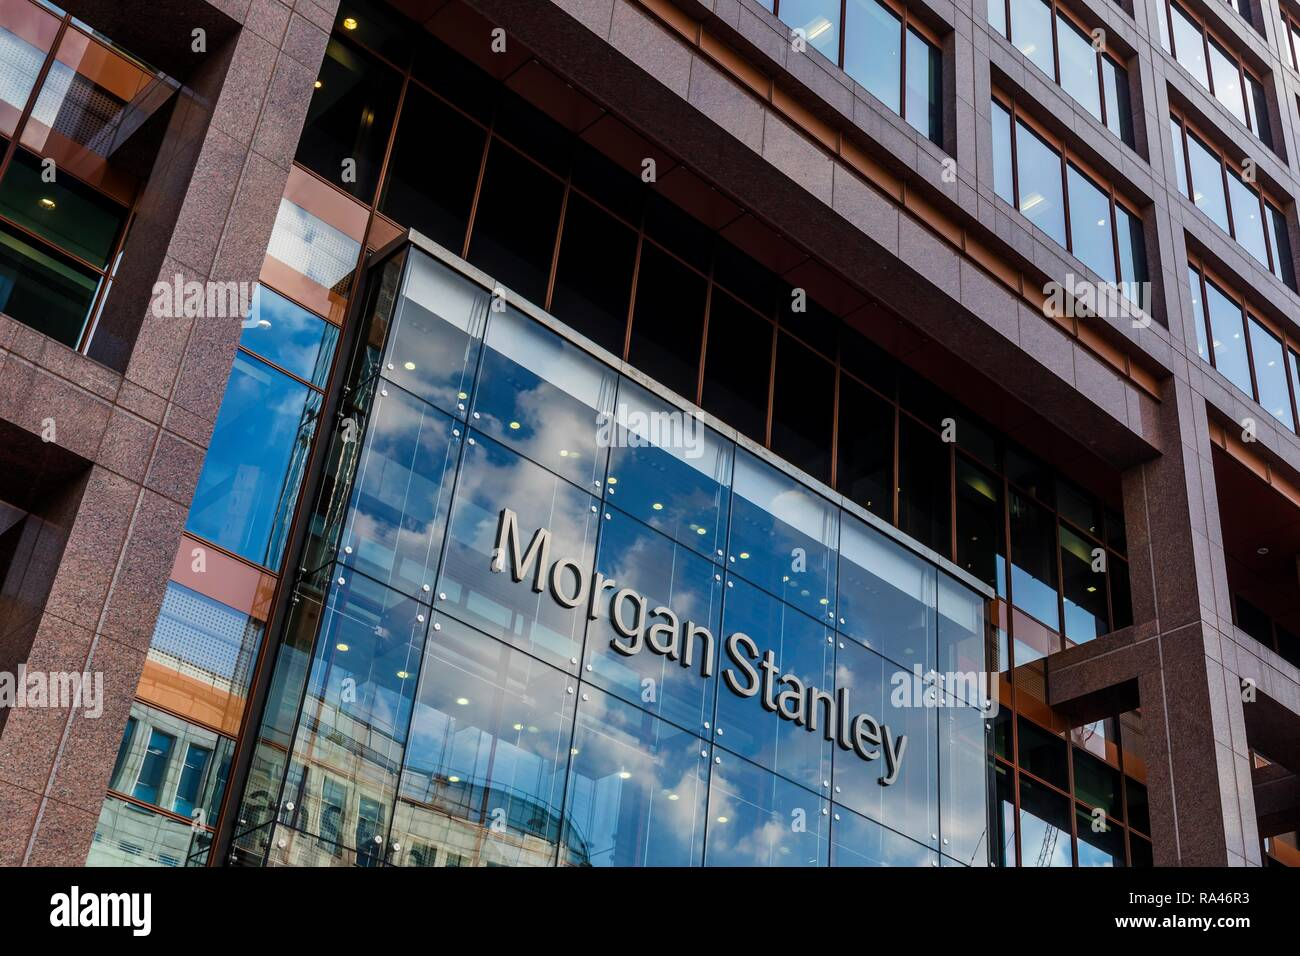 Morgan Stanley Bank Stock Photos & Morgan Stanley Bank Stock Images